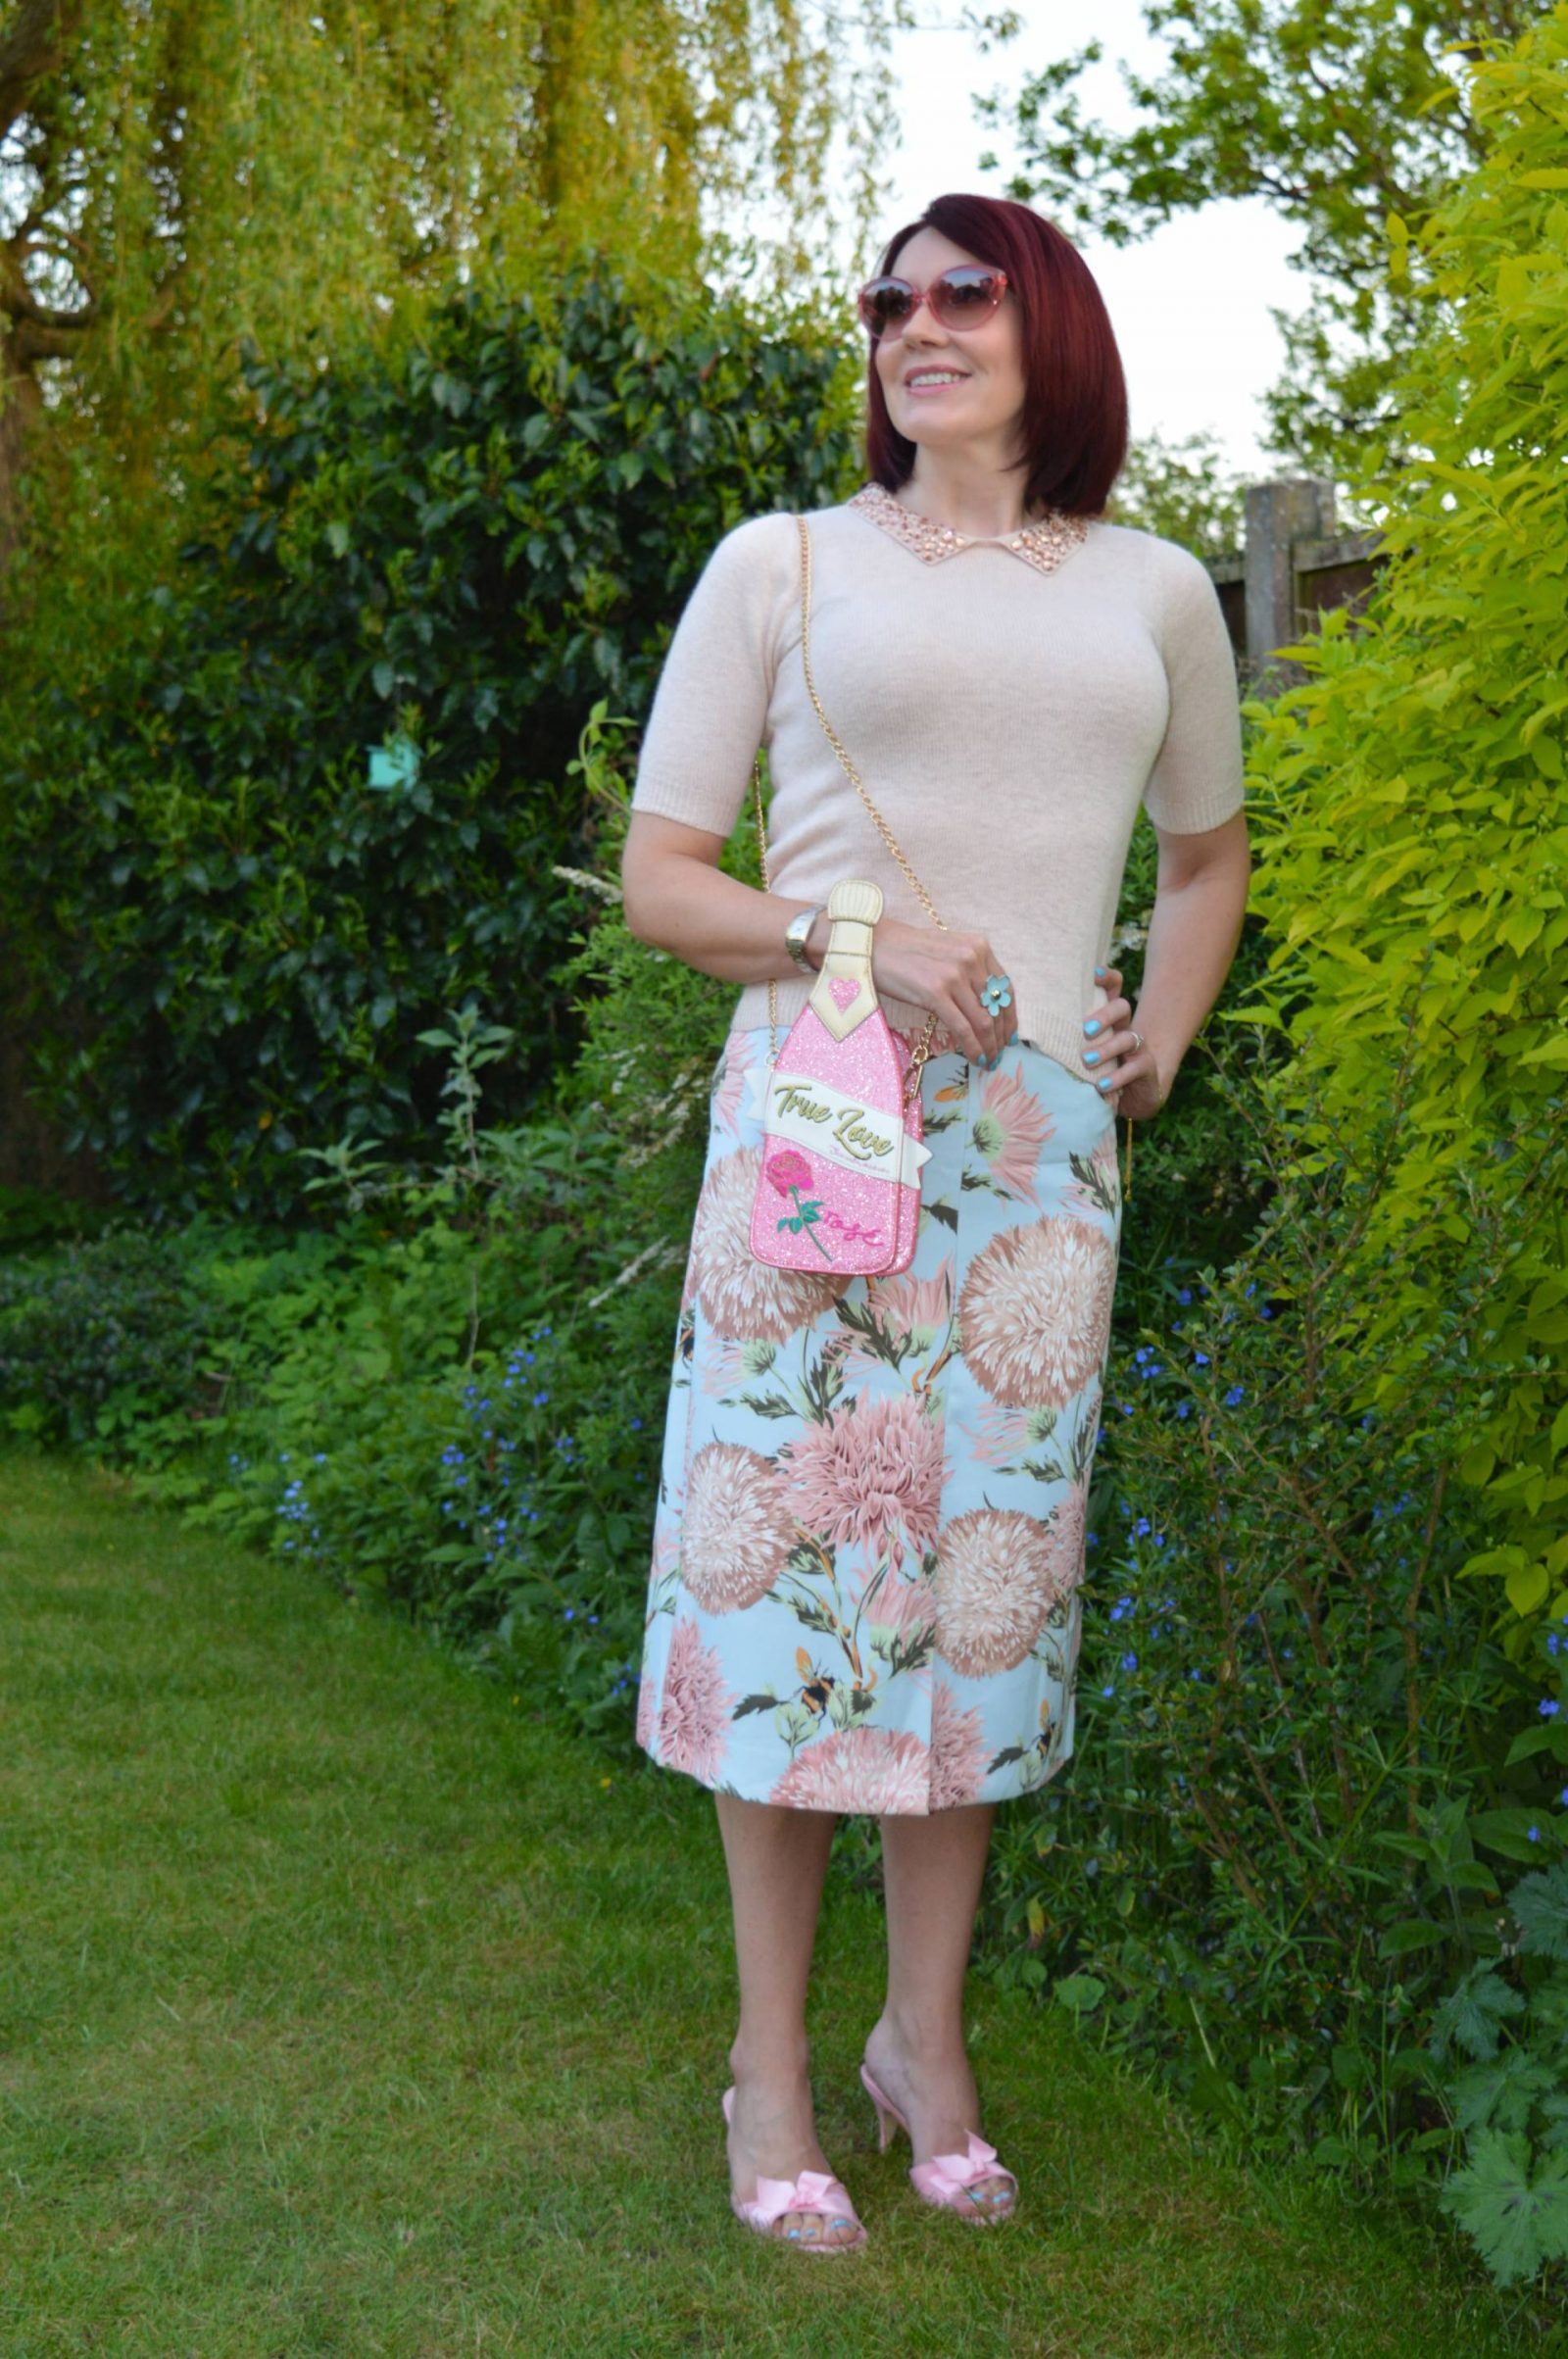 Floral Print Pencil Skirt and a Novelty Bag, Warehouse carnation print skirt, Skinny Dip wine bottle crossbody bag